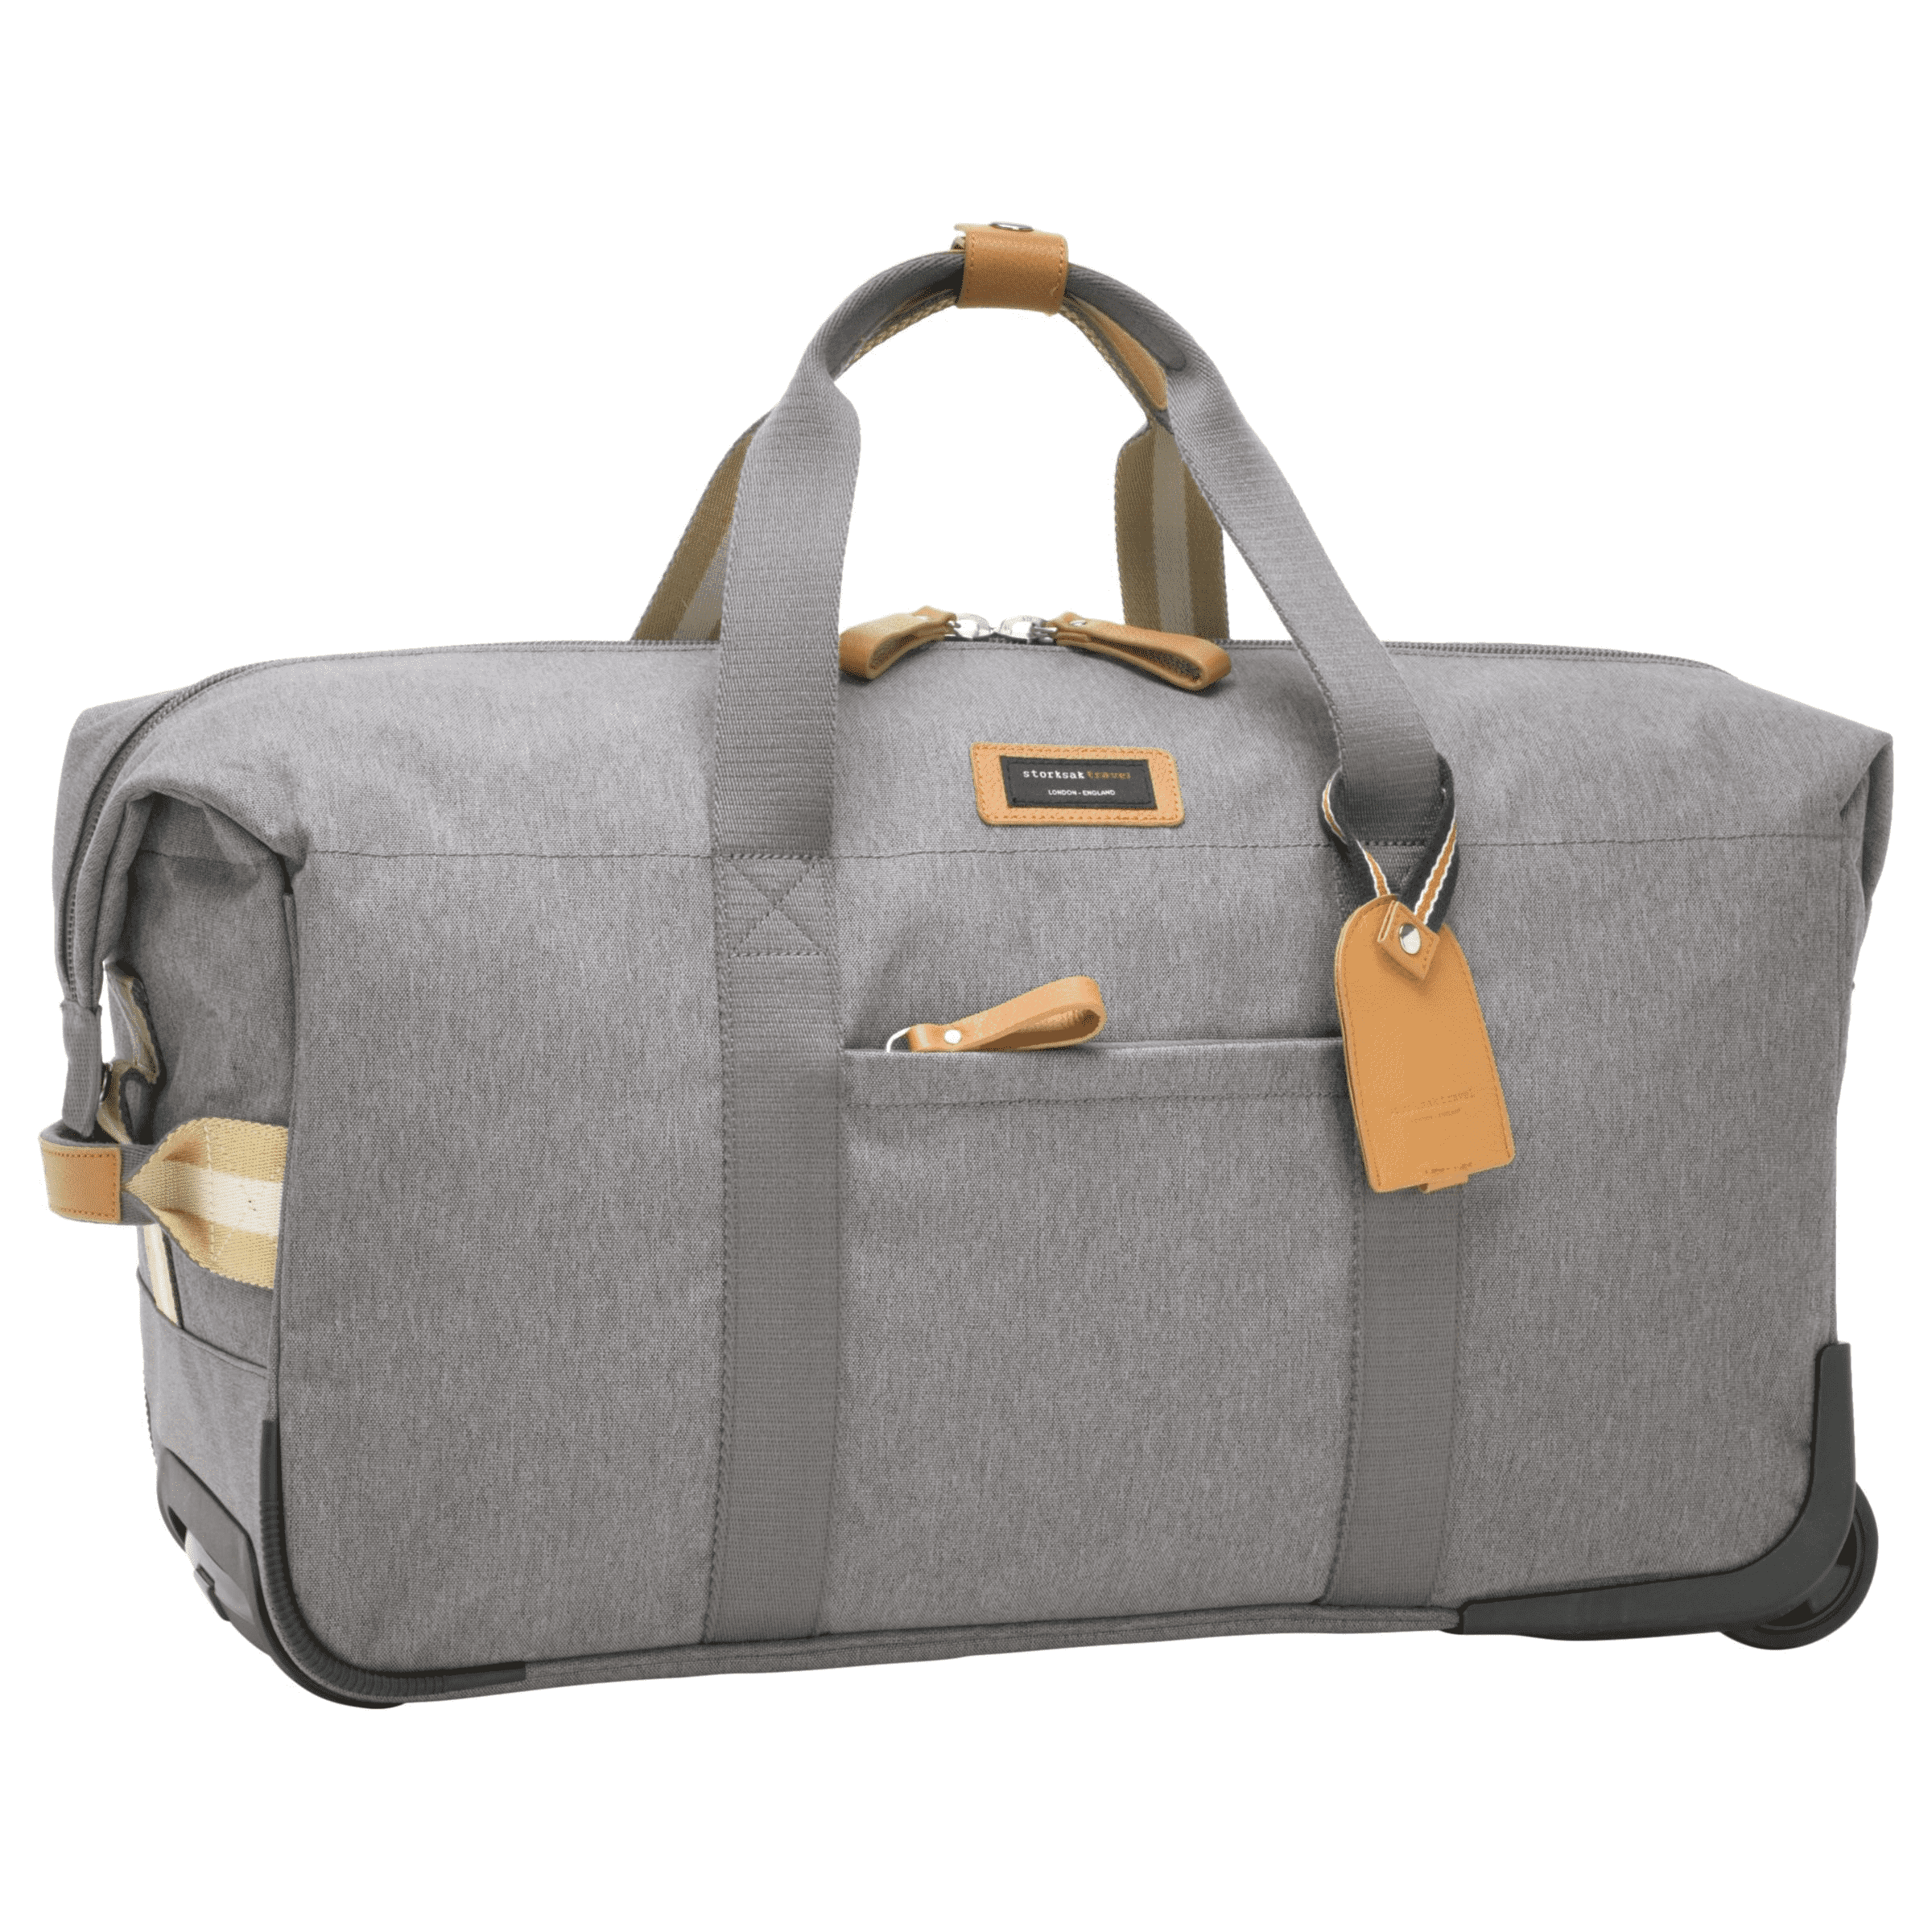 Storksak Cabin Carry On Bag